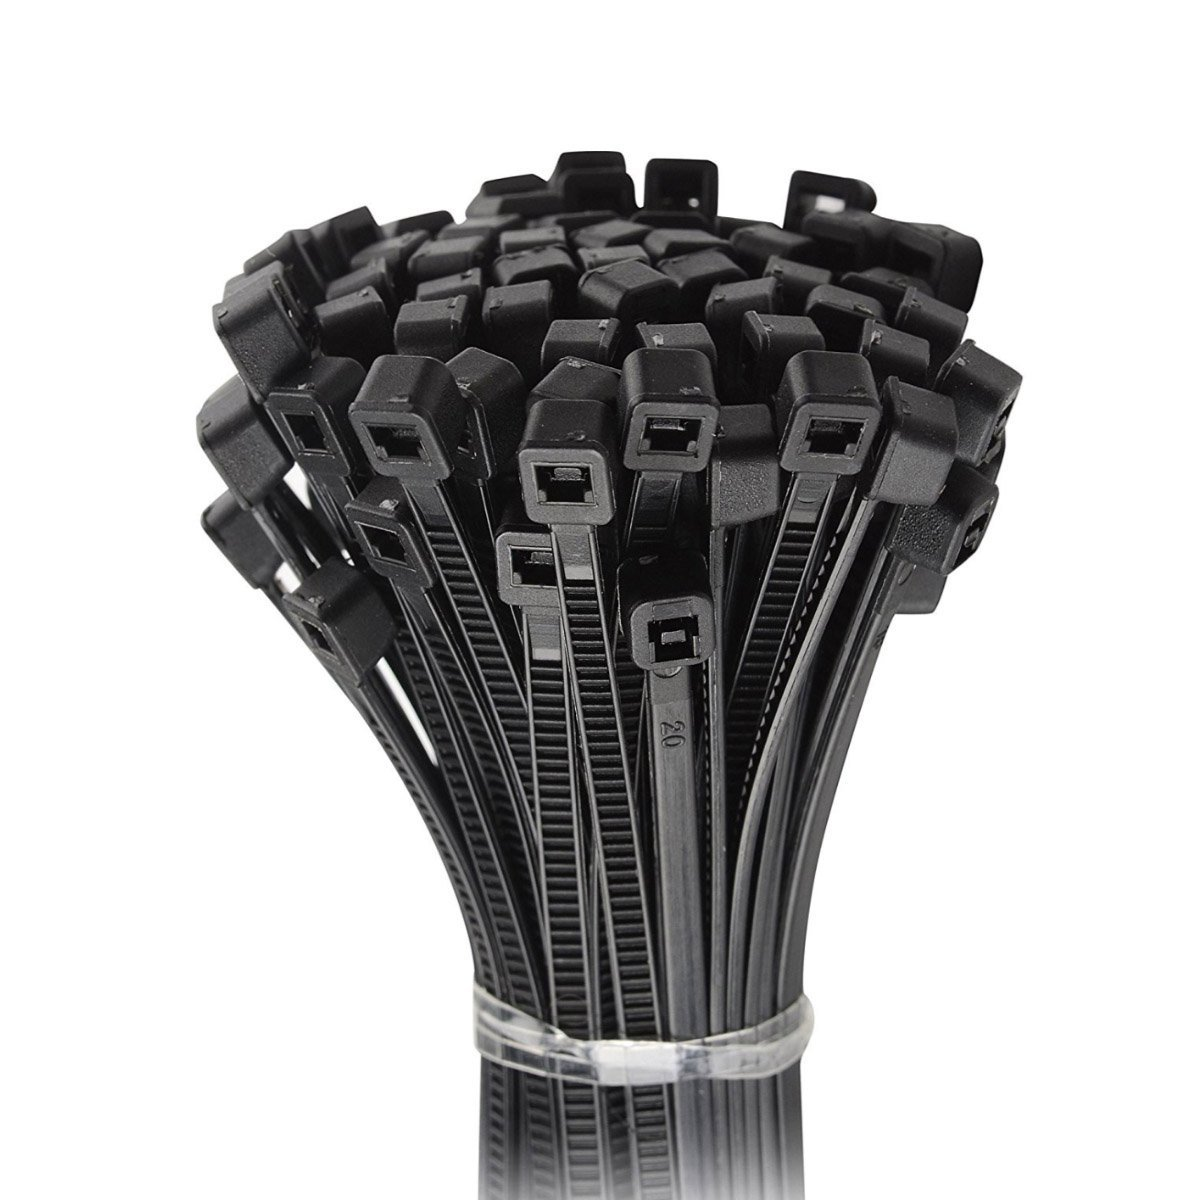 Nylon Cable Zip Ties - 0.2 x 8 inch - Plastic Cable Tie Mounts Self-Locking - UL Certified - Perfect for Cable Management, Organizing Wires [500-Pack - Black]